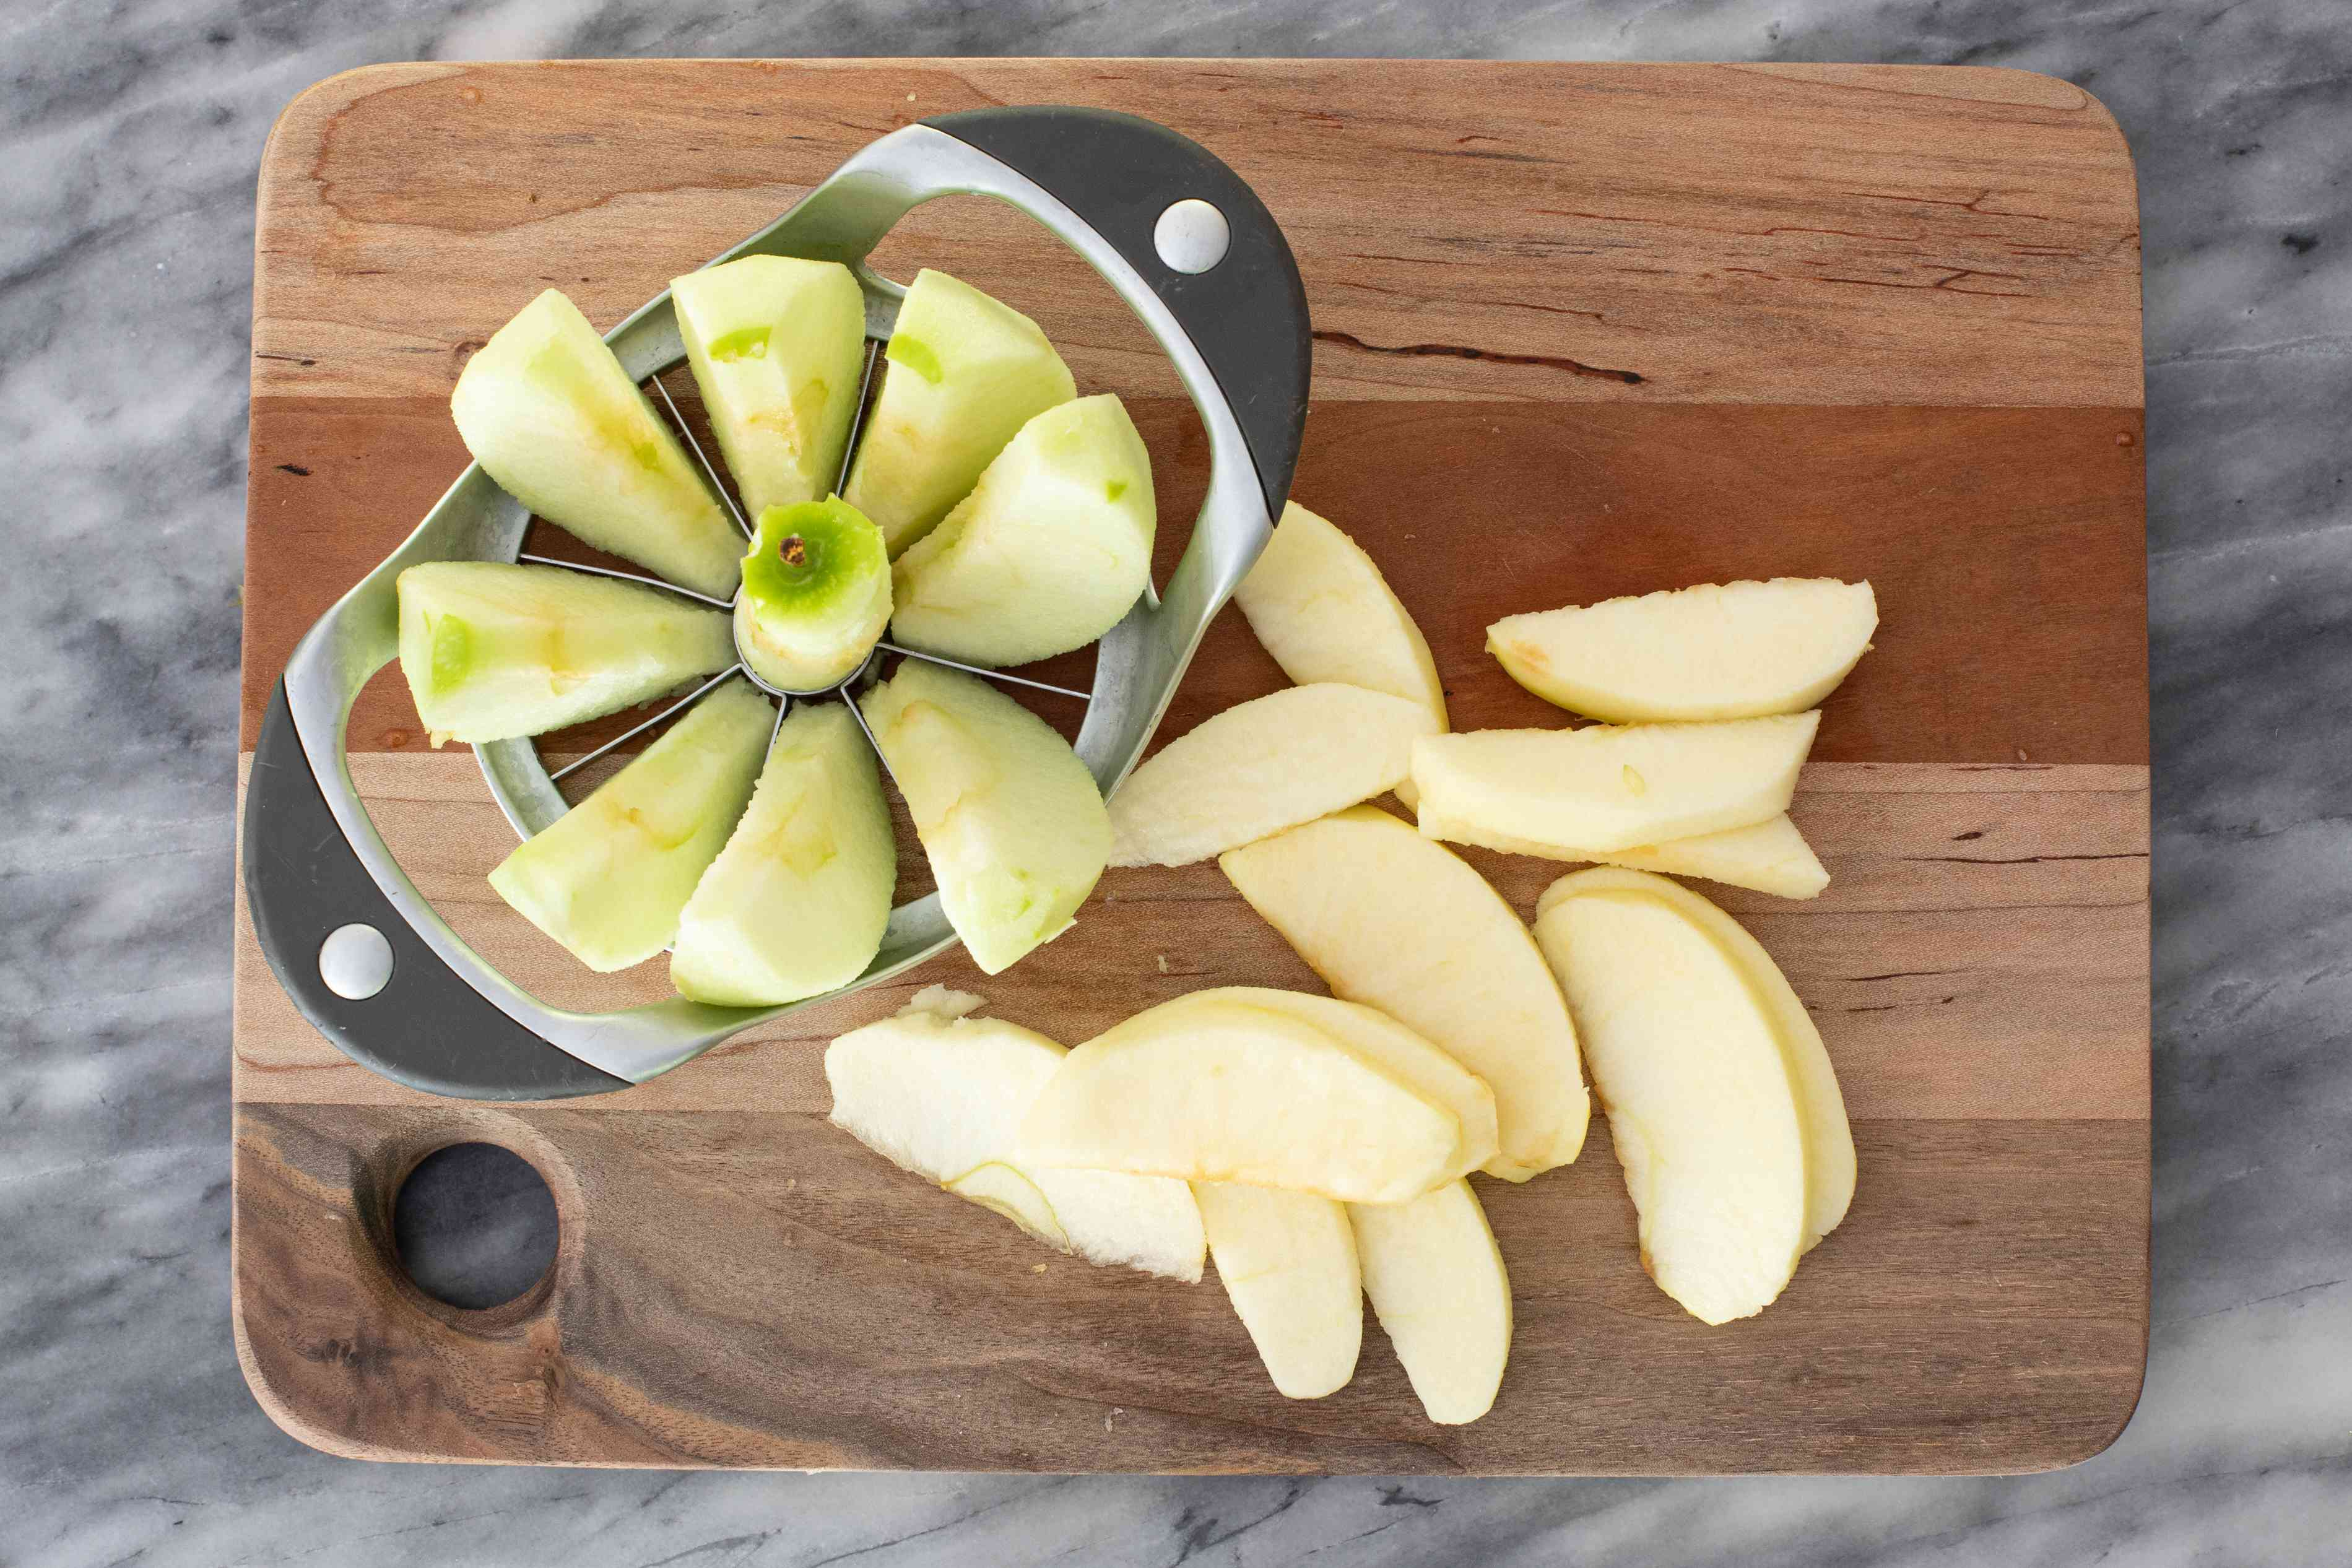 peel, core, and slicing apples